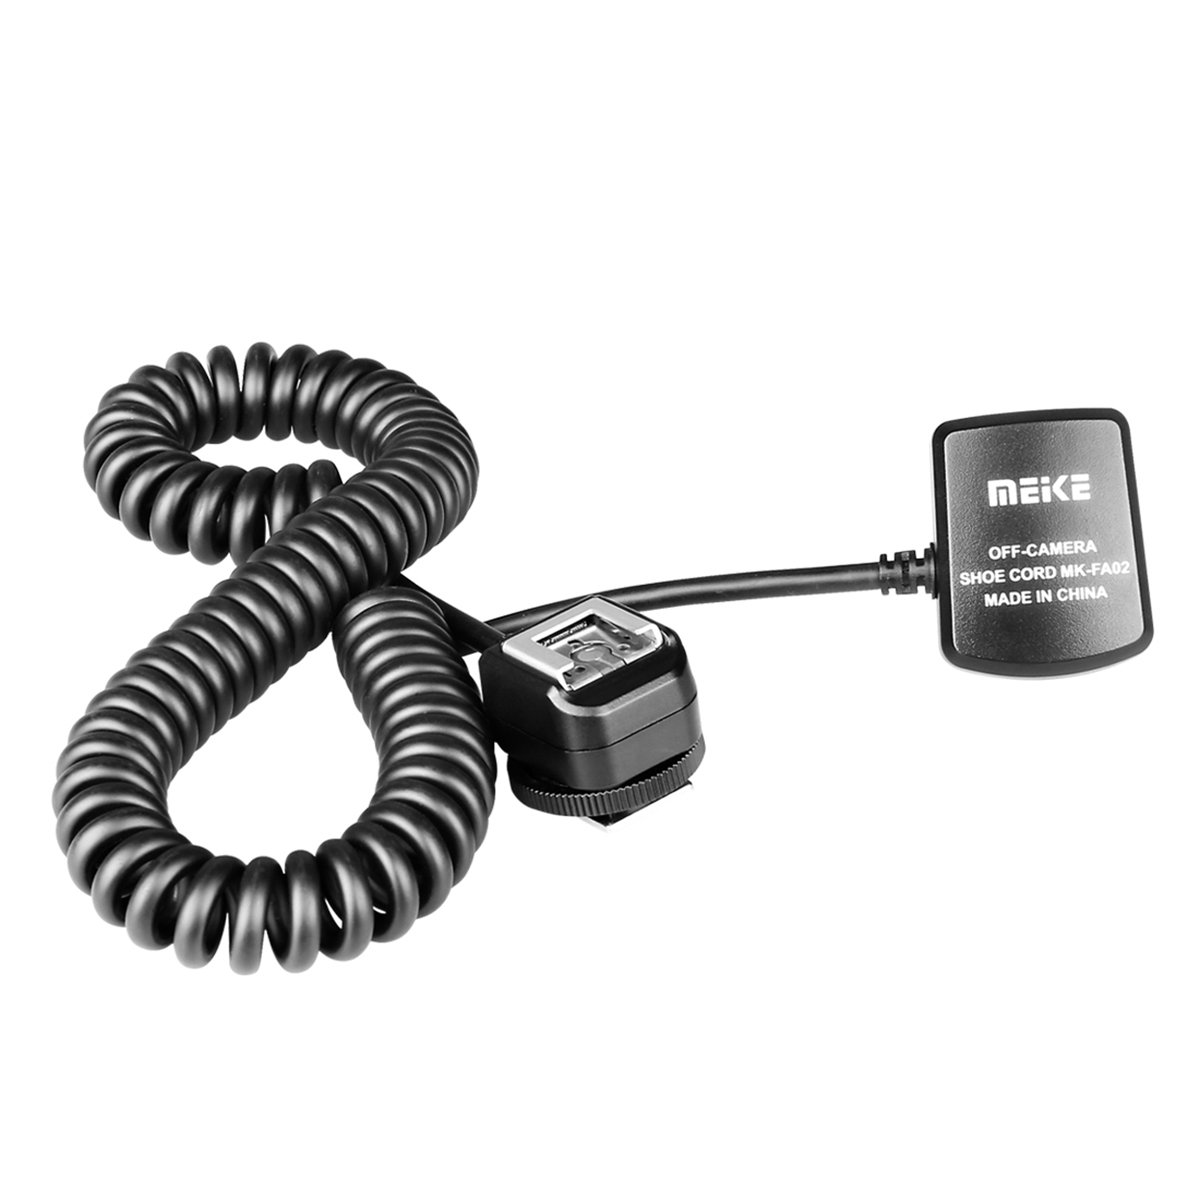 Meike MK-FA02 TTL Off-Camera Flash Shoe Cord Extended 3Ms Work for Sony Camera and Flash with Mi Port by Meike